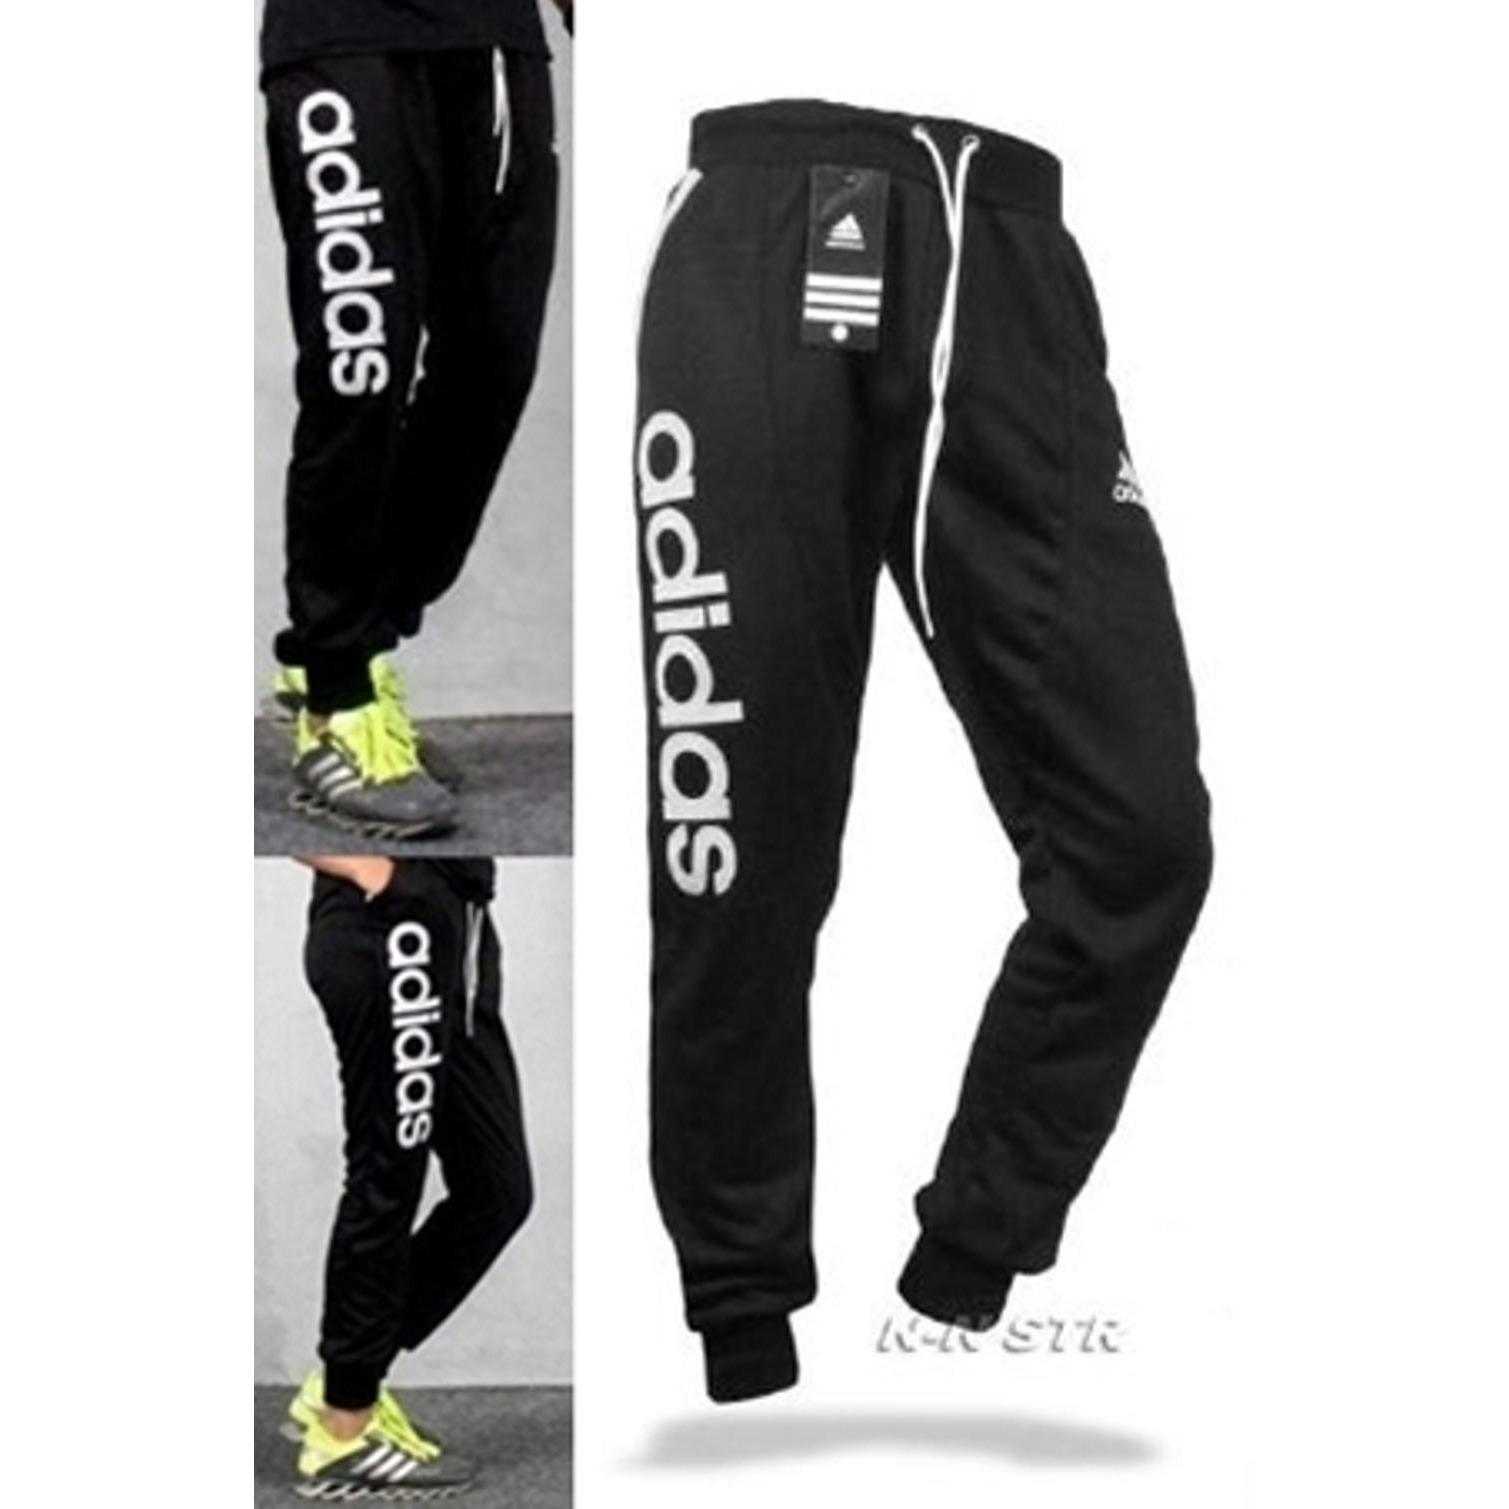 Jogger Nike / Adidas / Training / Sweatpants / Jogger Pants